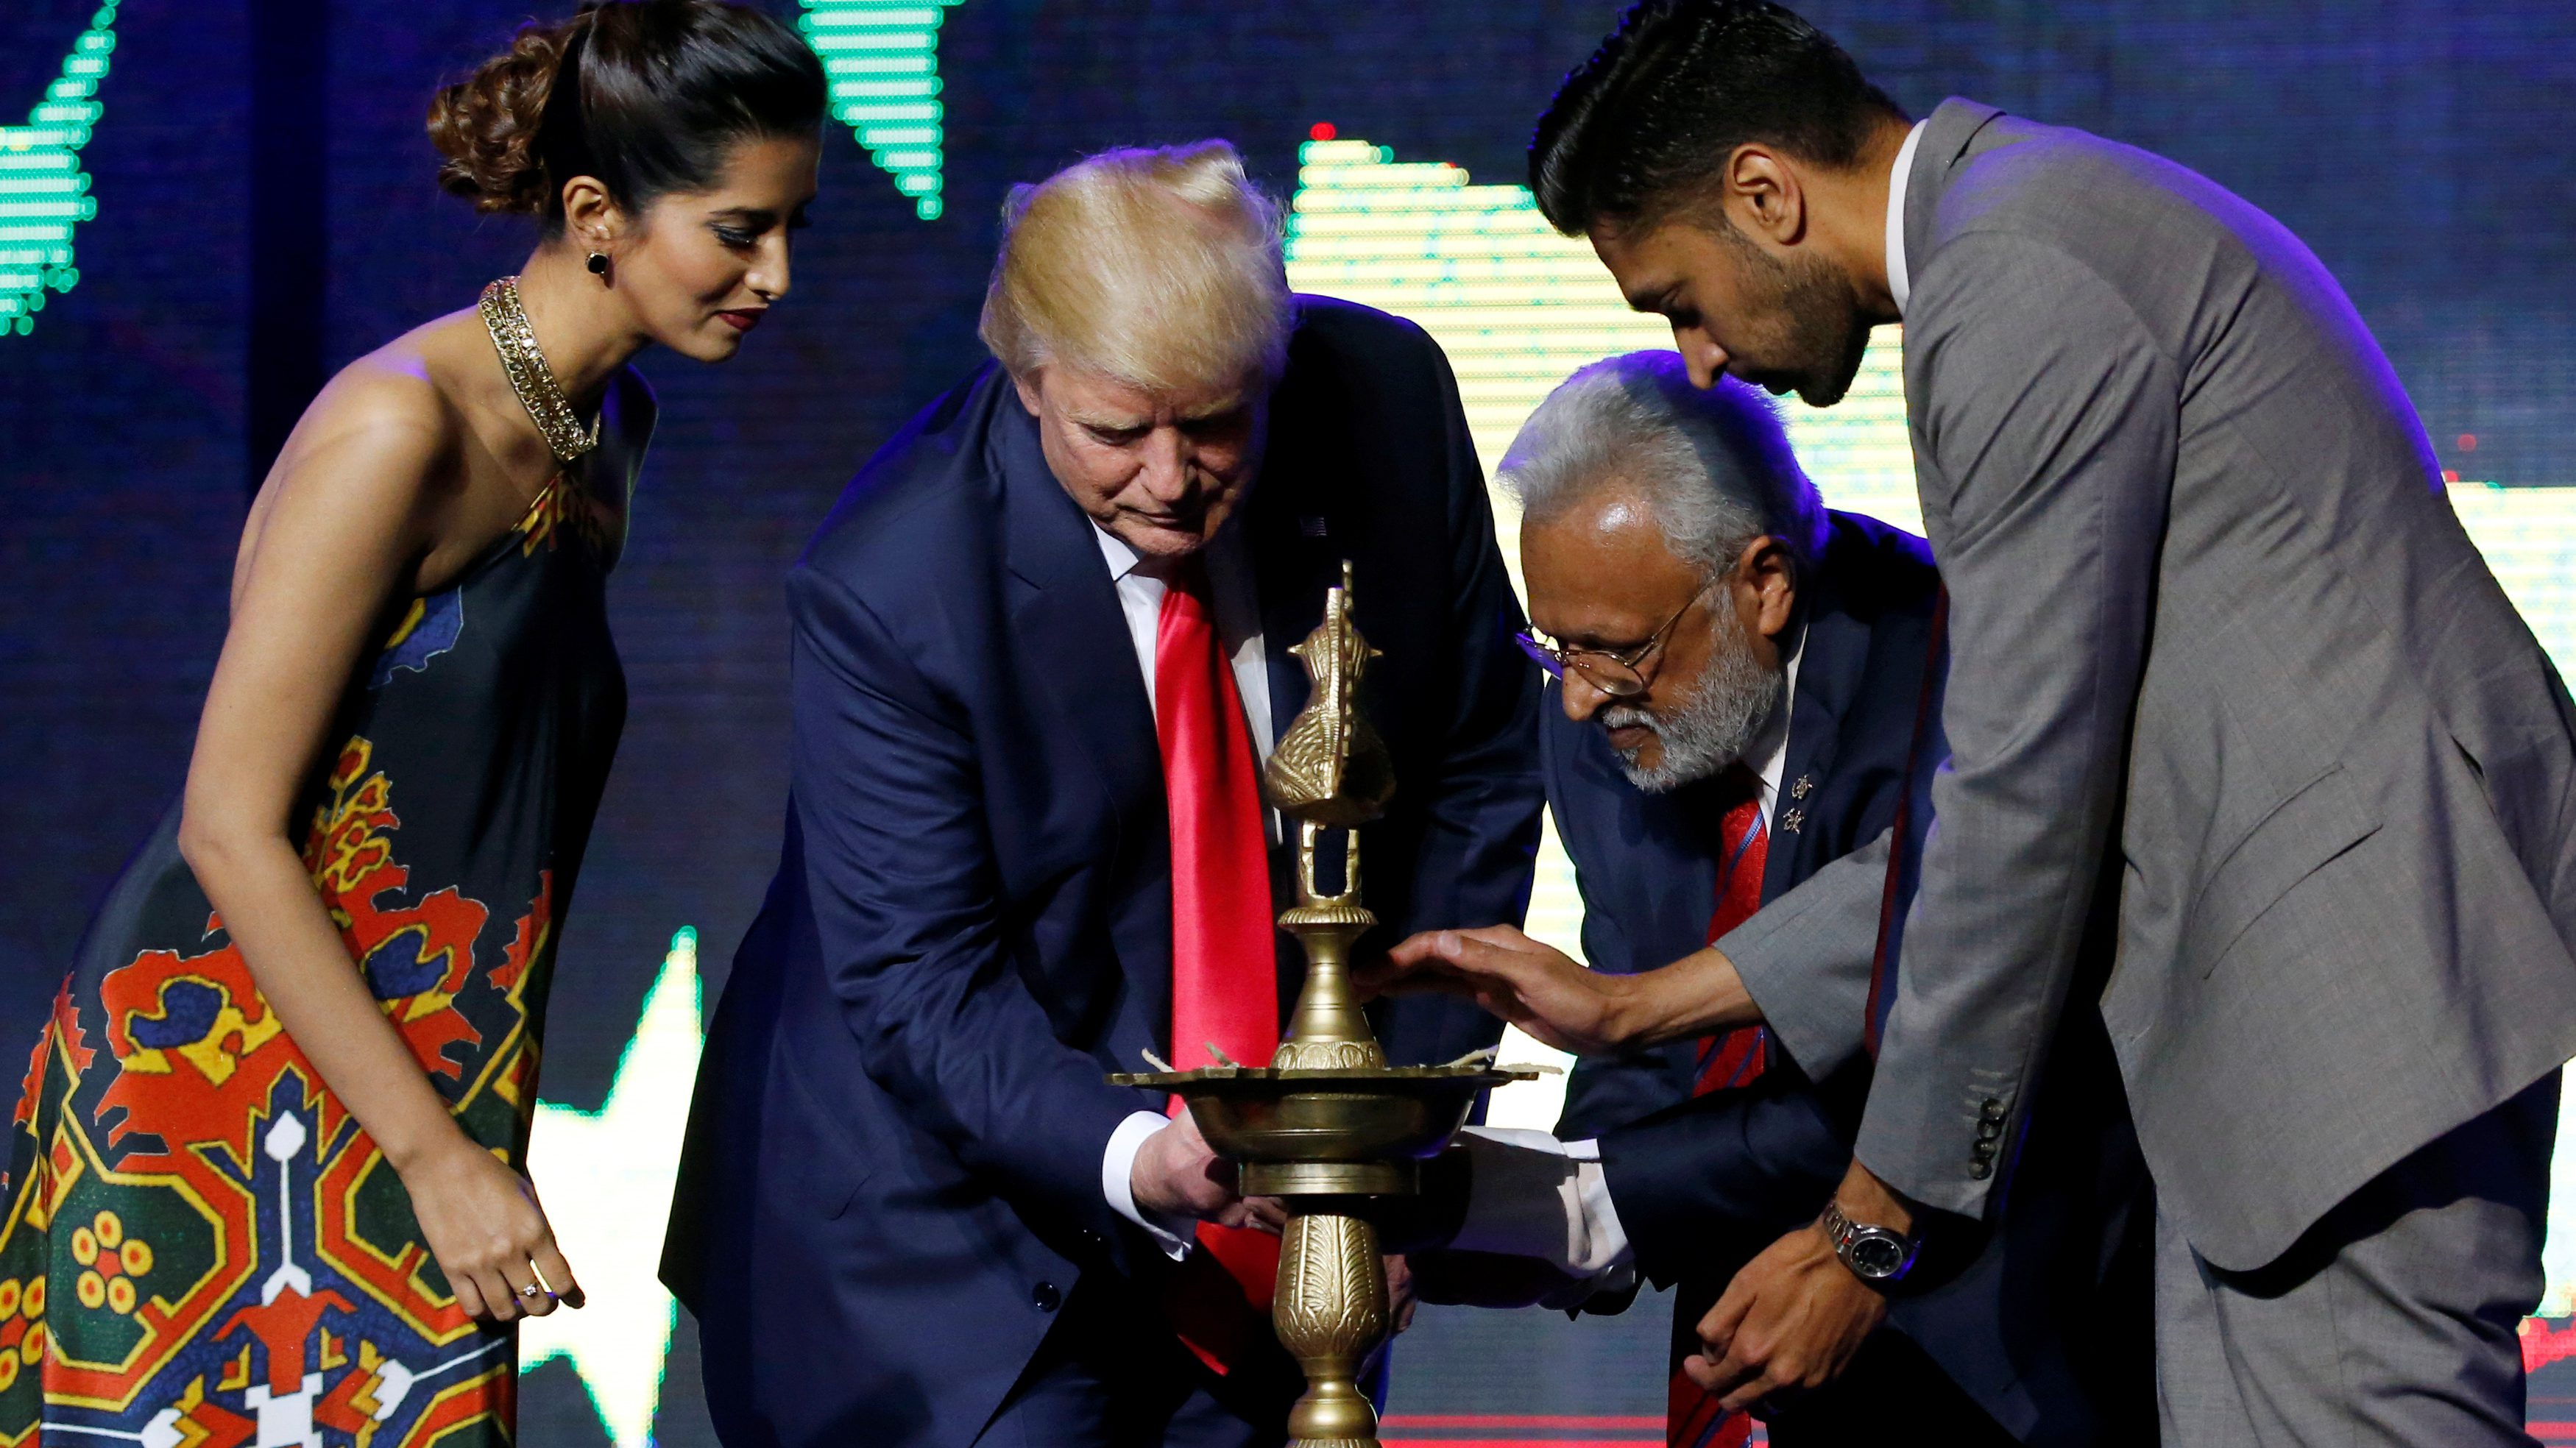 Republican Hindu Coalition Chairman Shalli Kumar (2nd R) helps Republican presidential nominee Donald Trump (2nd L) light a ceremonial diya lamp before he speaks at a Bollywood-themed charity concert put on by the Republican Hindu Coalition in Edison, New Jersey, U.S. October 15, 2016. REUTERS/Jonathan Ernst - RTX2P03H